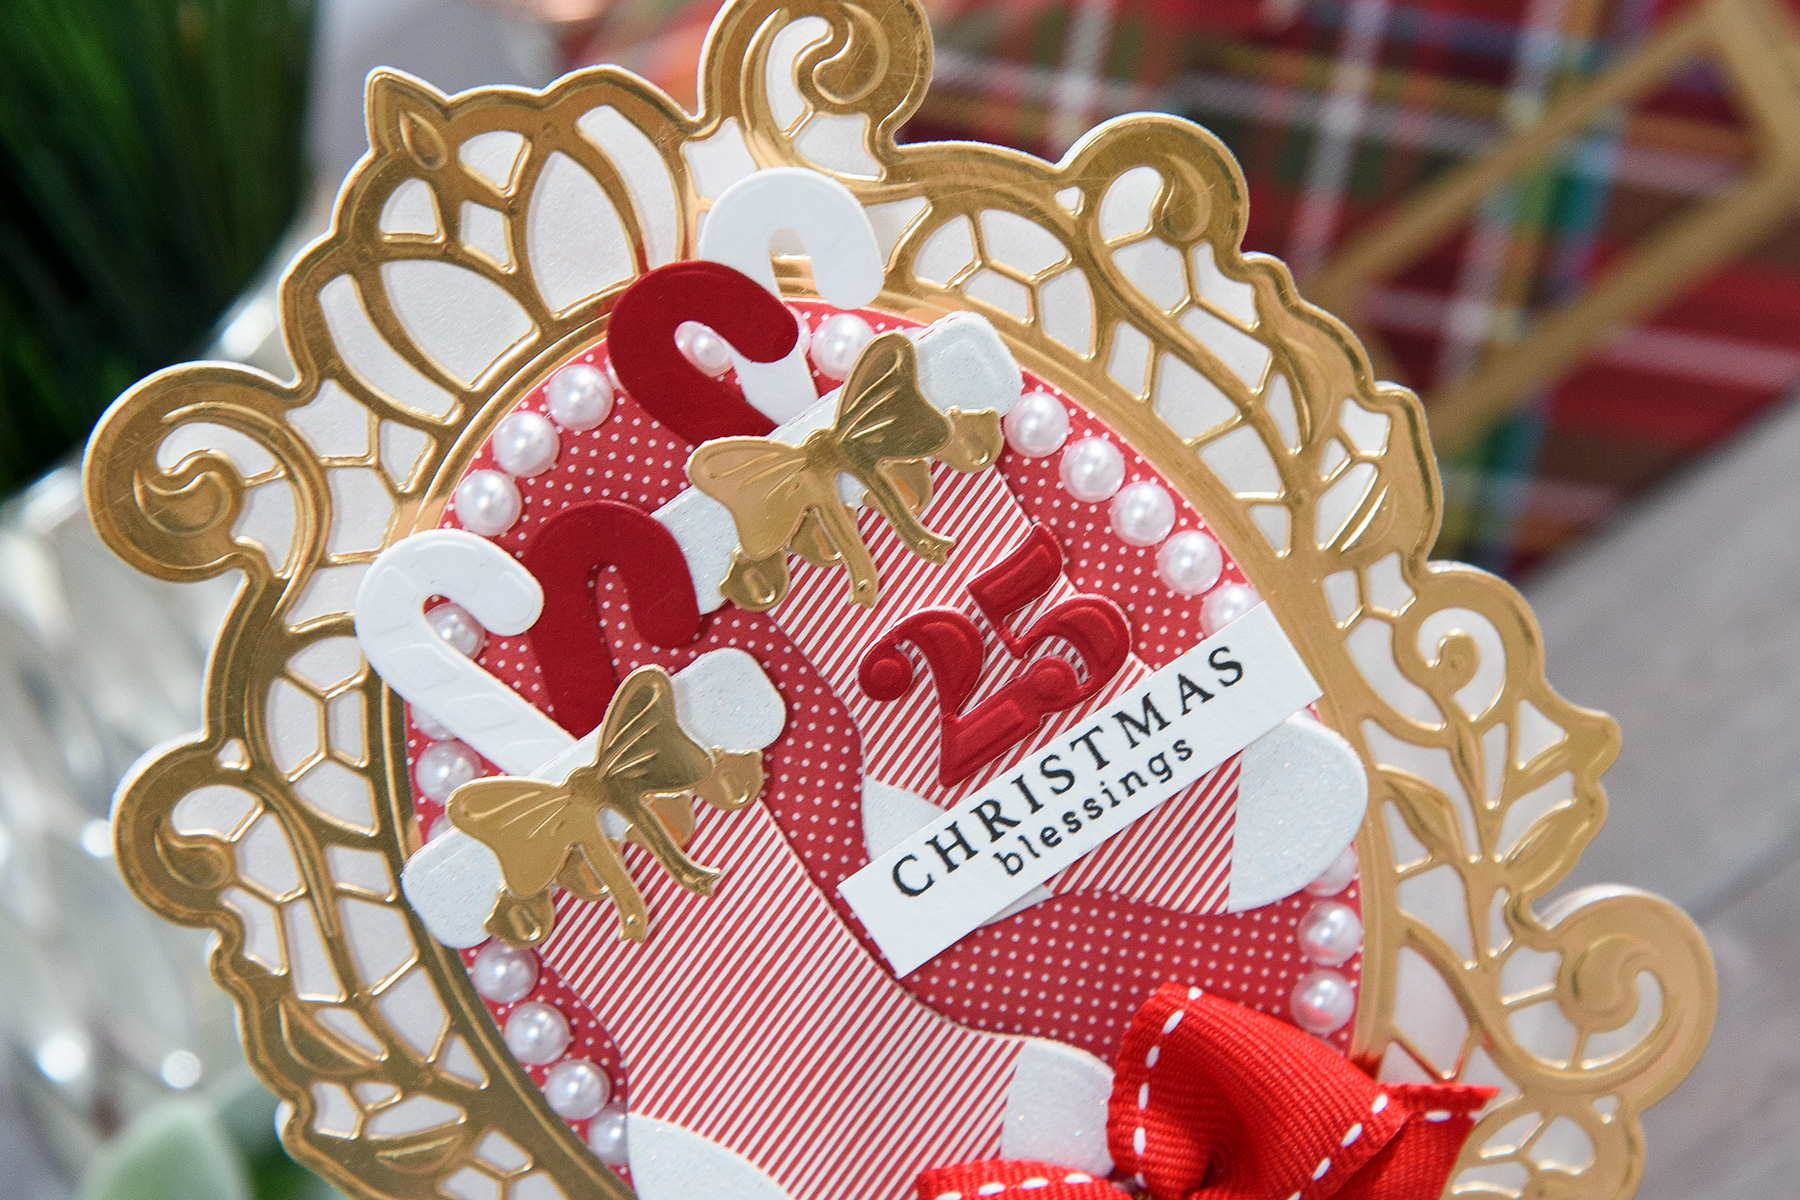 Layered Dimensional Die Cutting. Episode #3 - Shaped Christmas Card